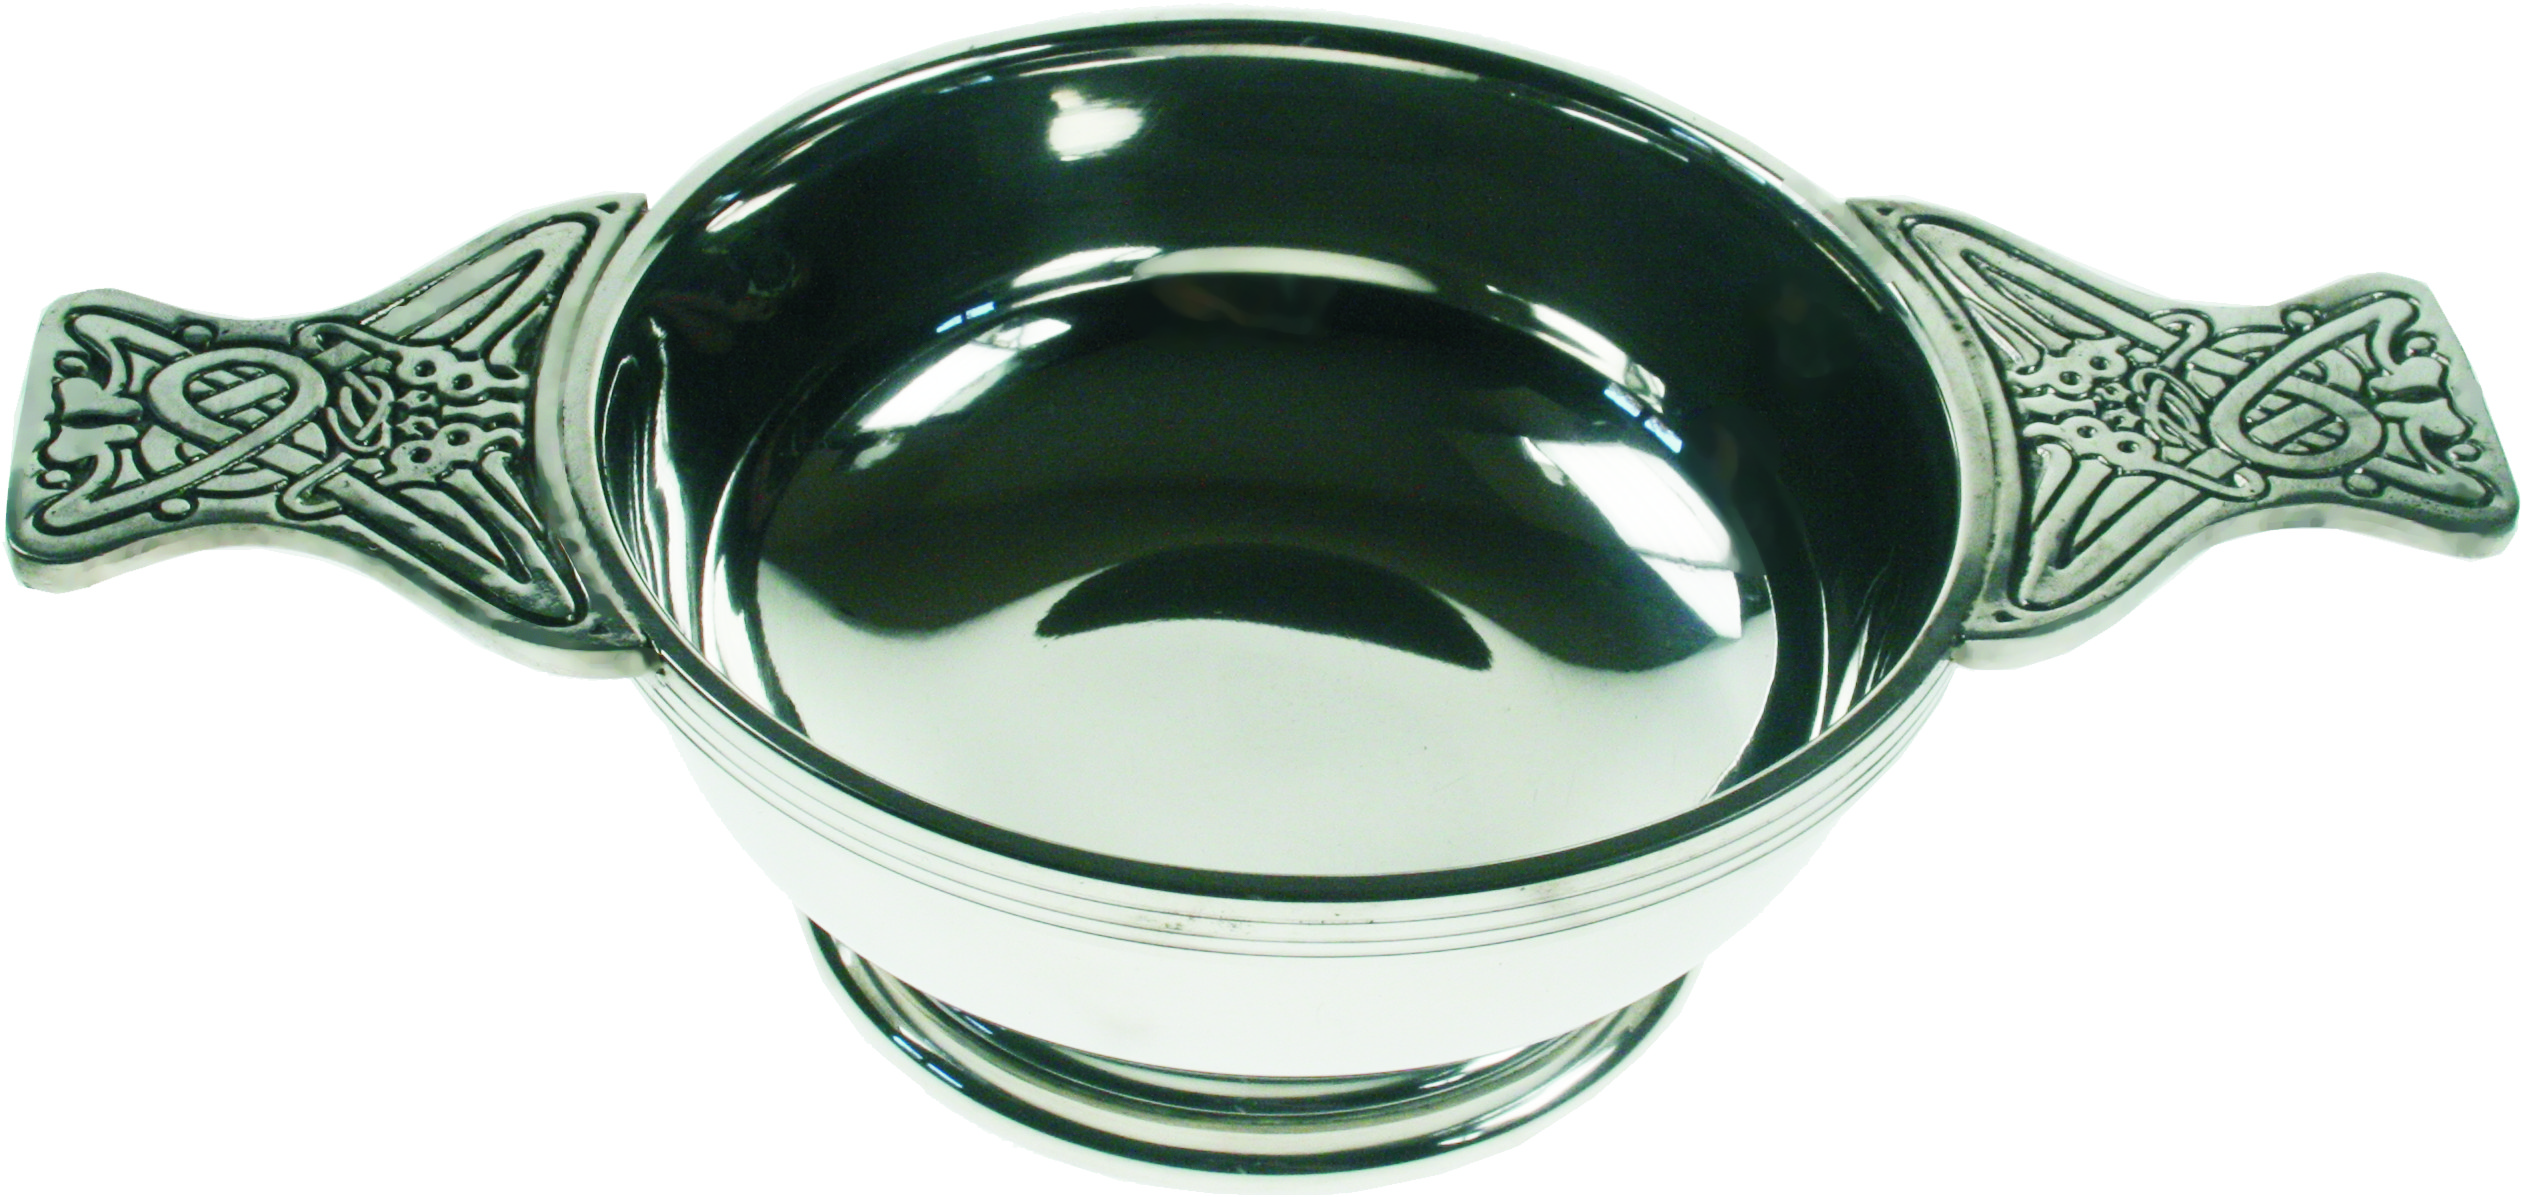 "Pewter Quaich Bowl with Celtic Patterned Handle 14cm (5.5"")"